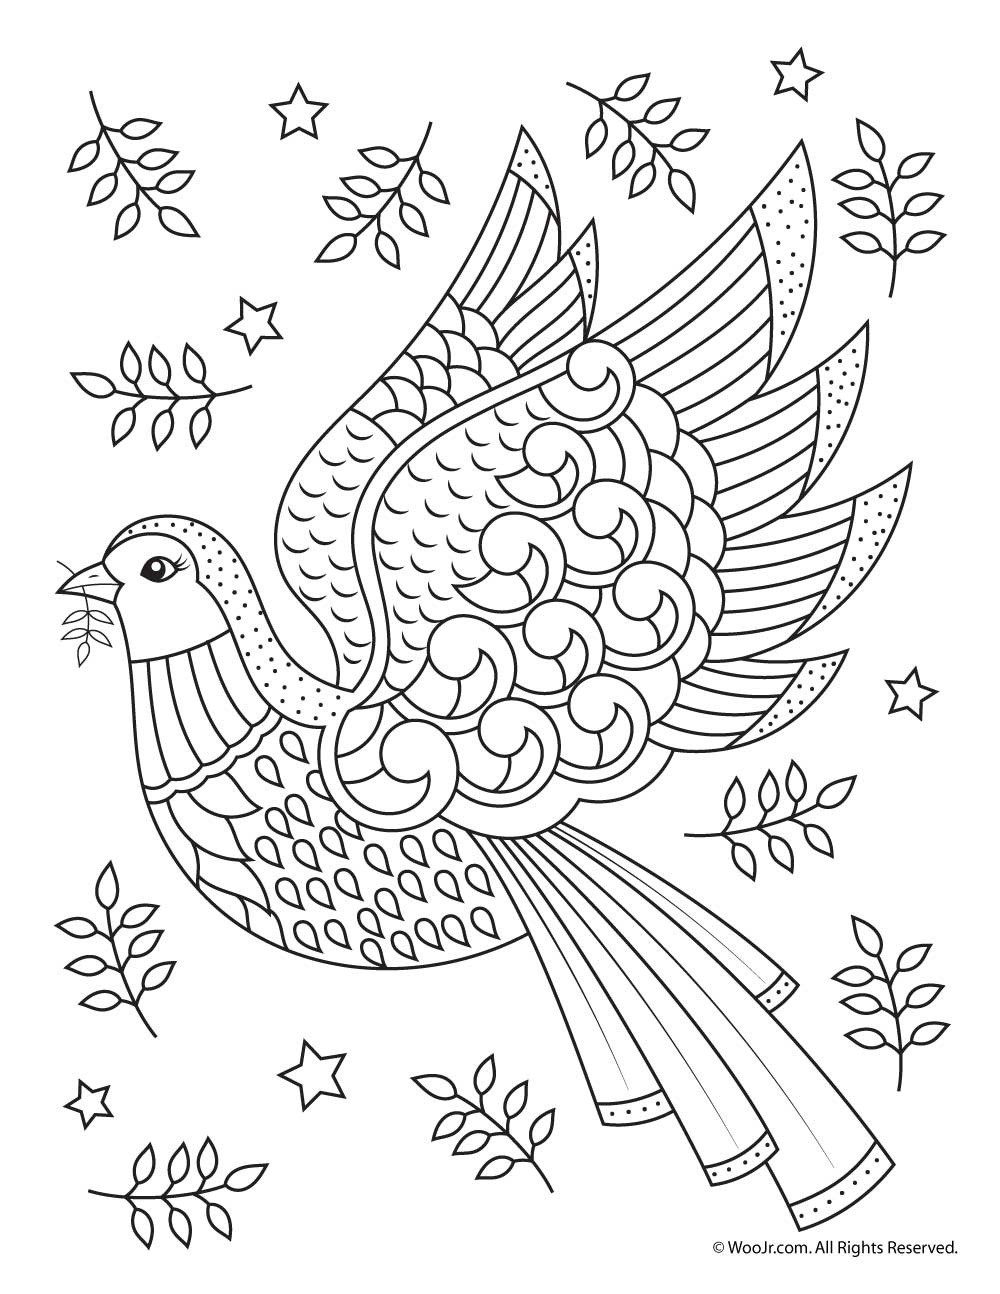 adult coloring page christmas dove - Coloring Stencils